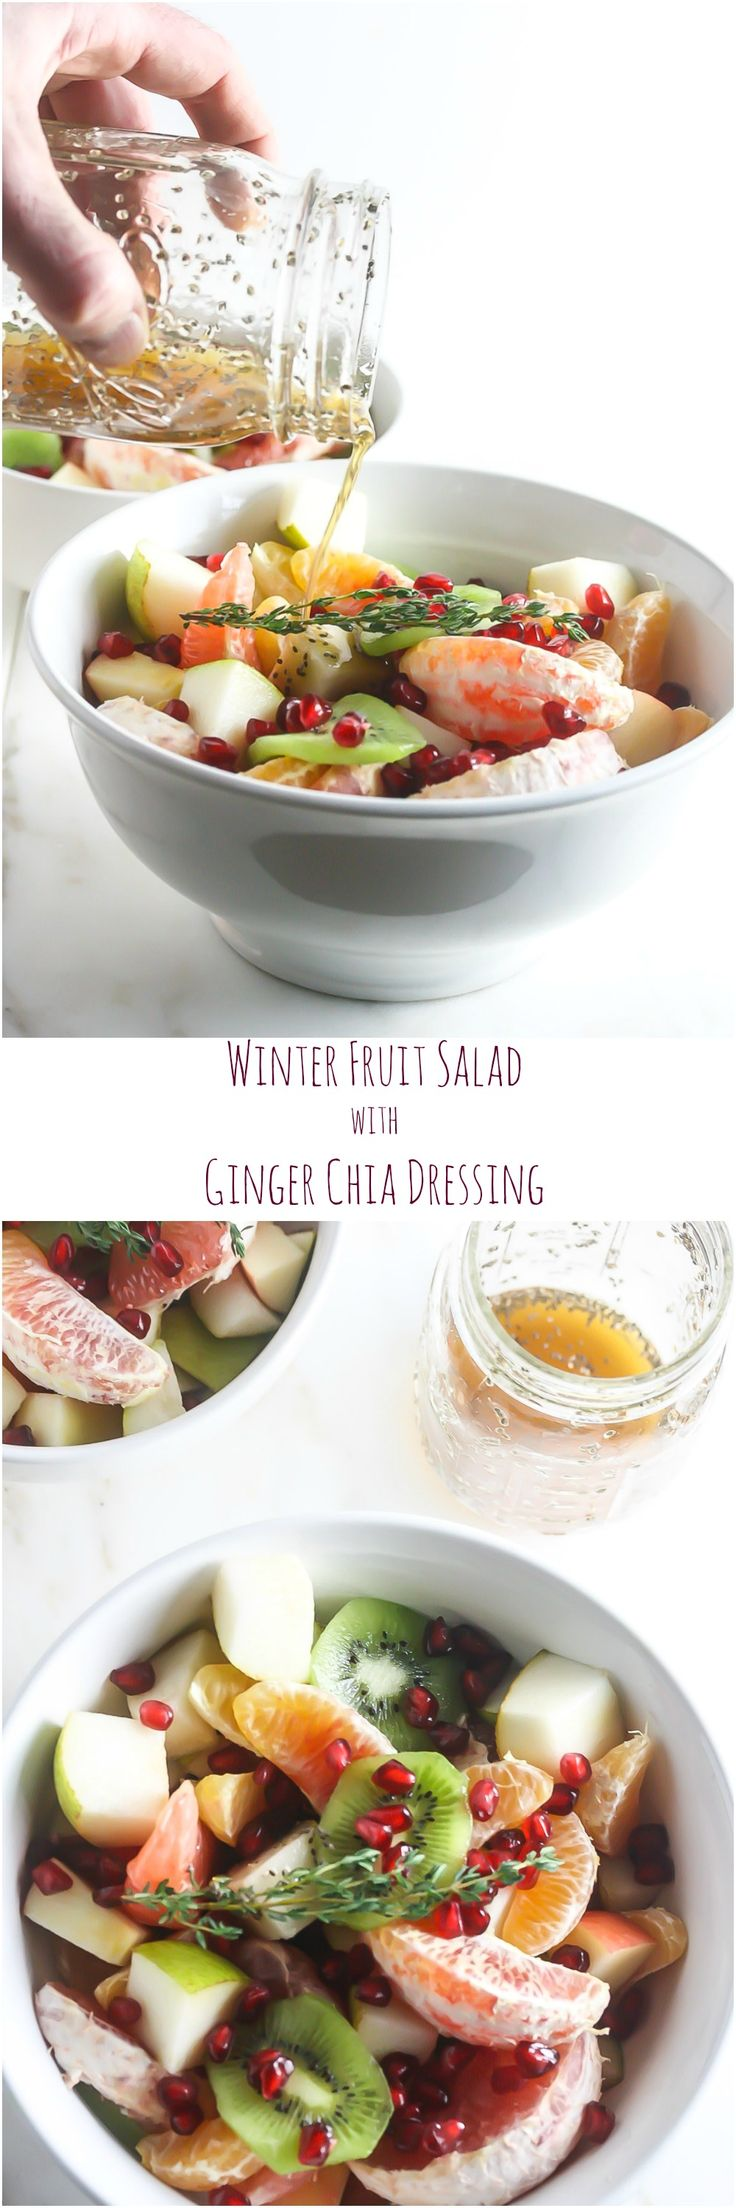 This Winter Fruit Salad with Ginger Chia Dressing is loaded with vitamins, nutrients, antioxidants and fiber! www.laurenkellynutrition.com